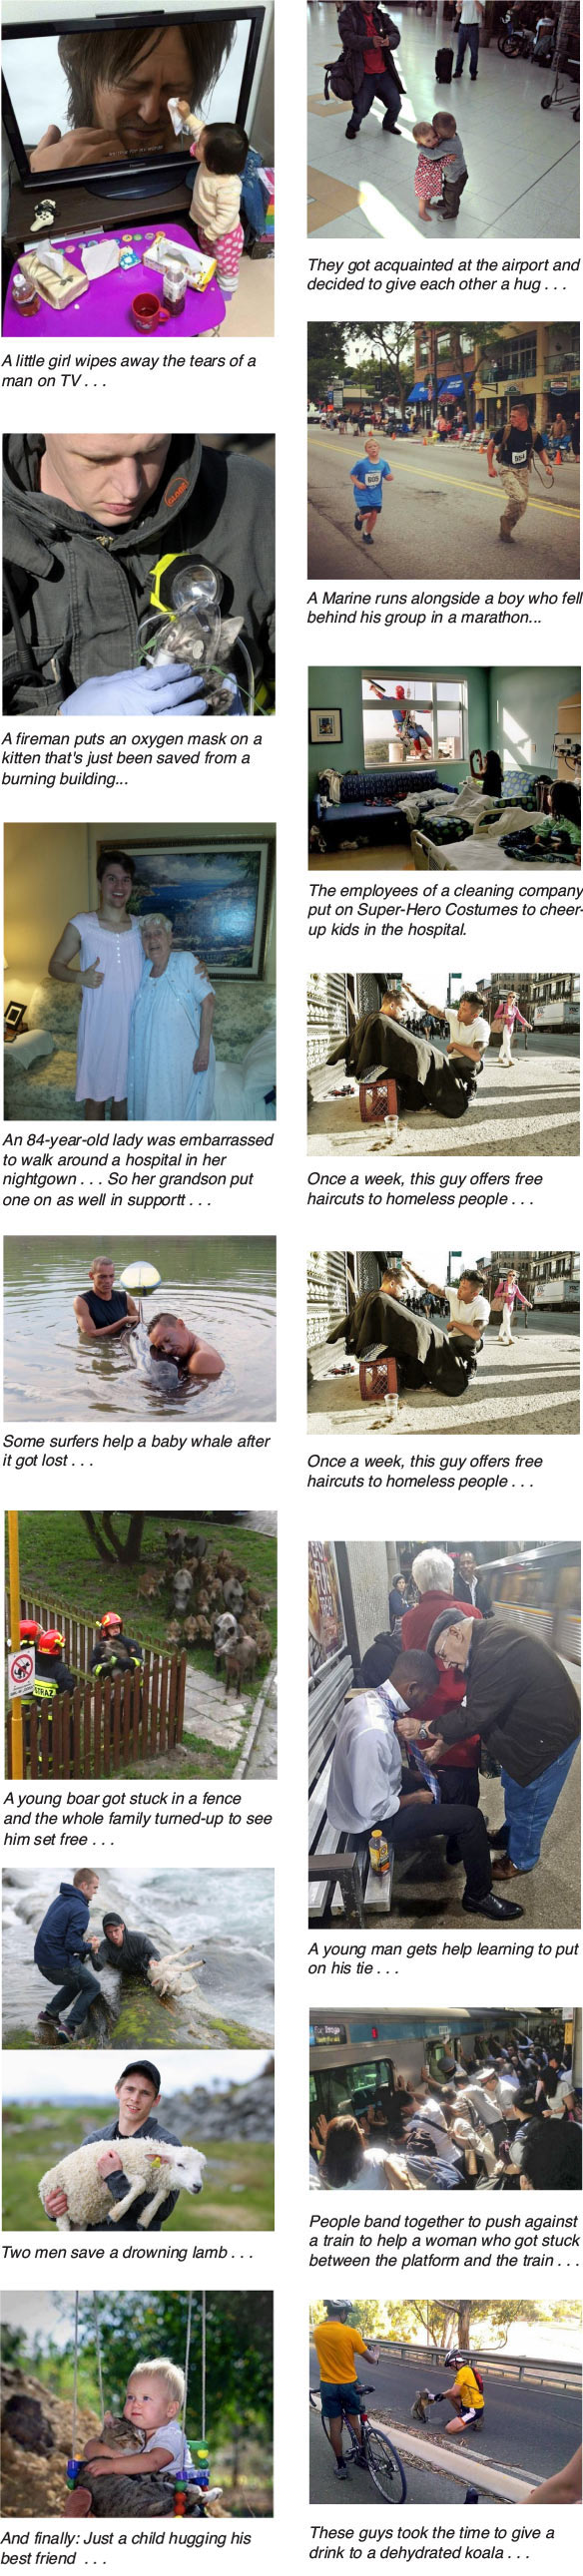 Different Acts of Kindness